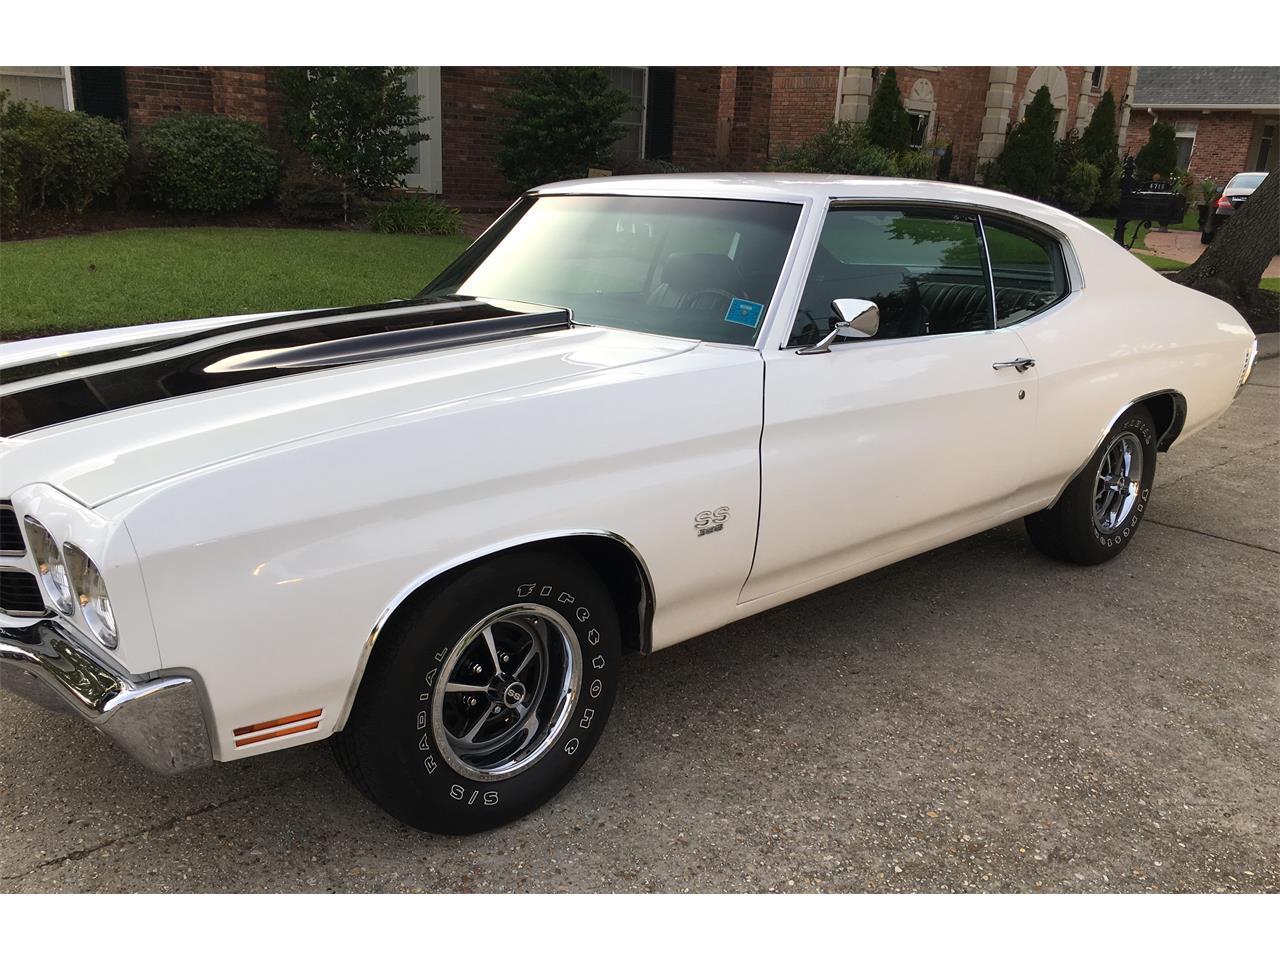 1970 Chevrolet Chevelle SS for sale in Metairie, LA – photo 2